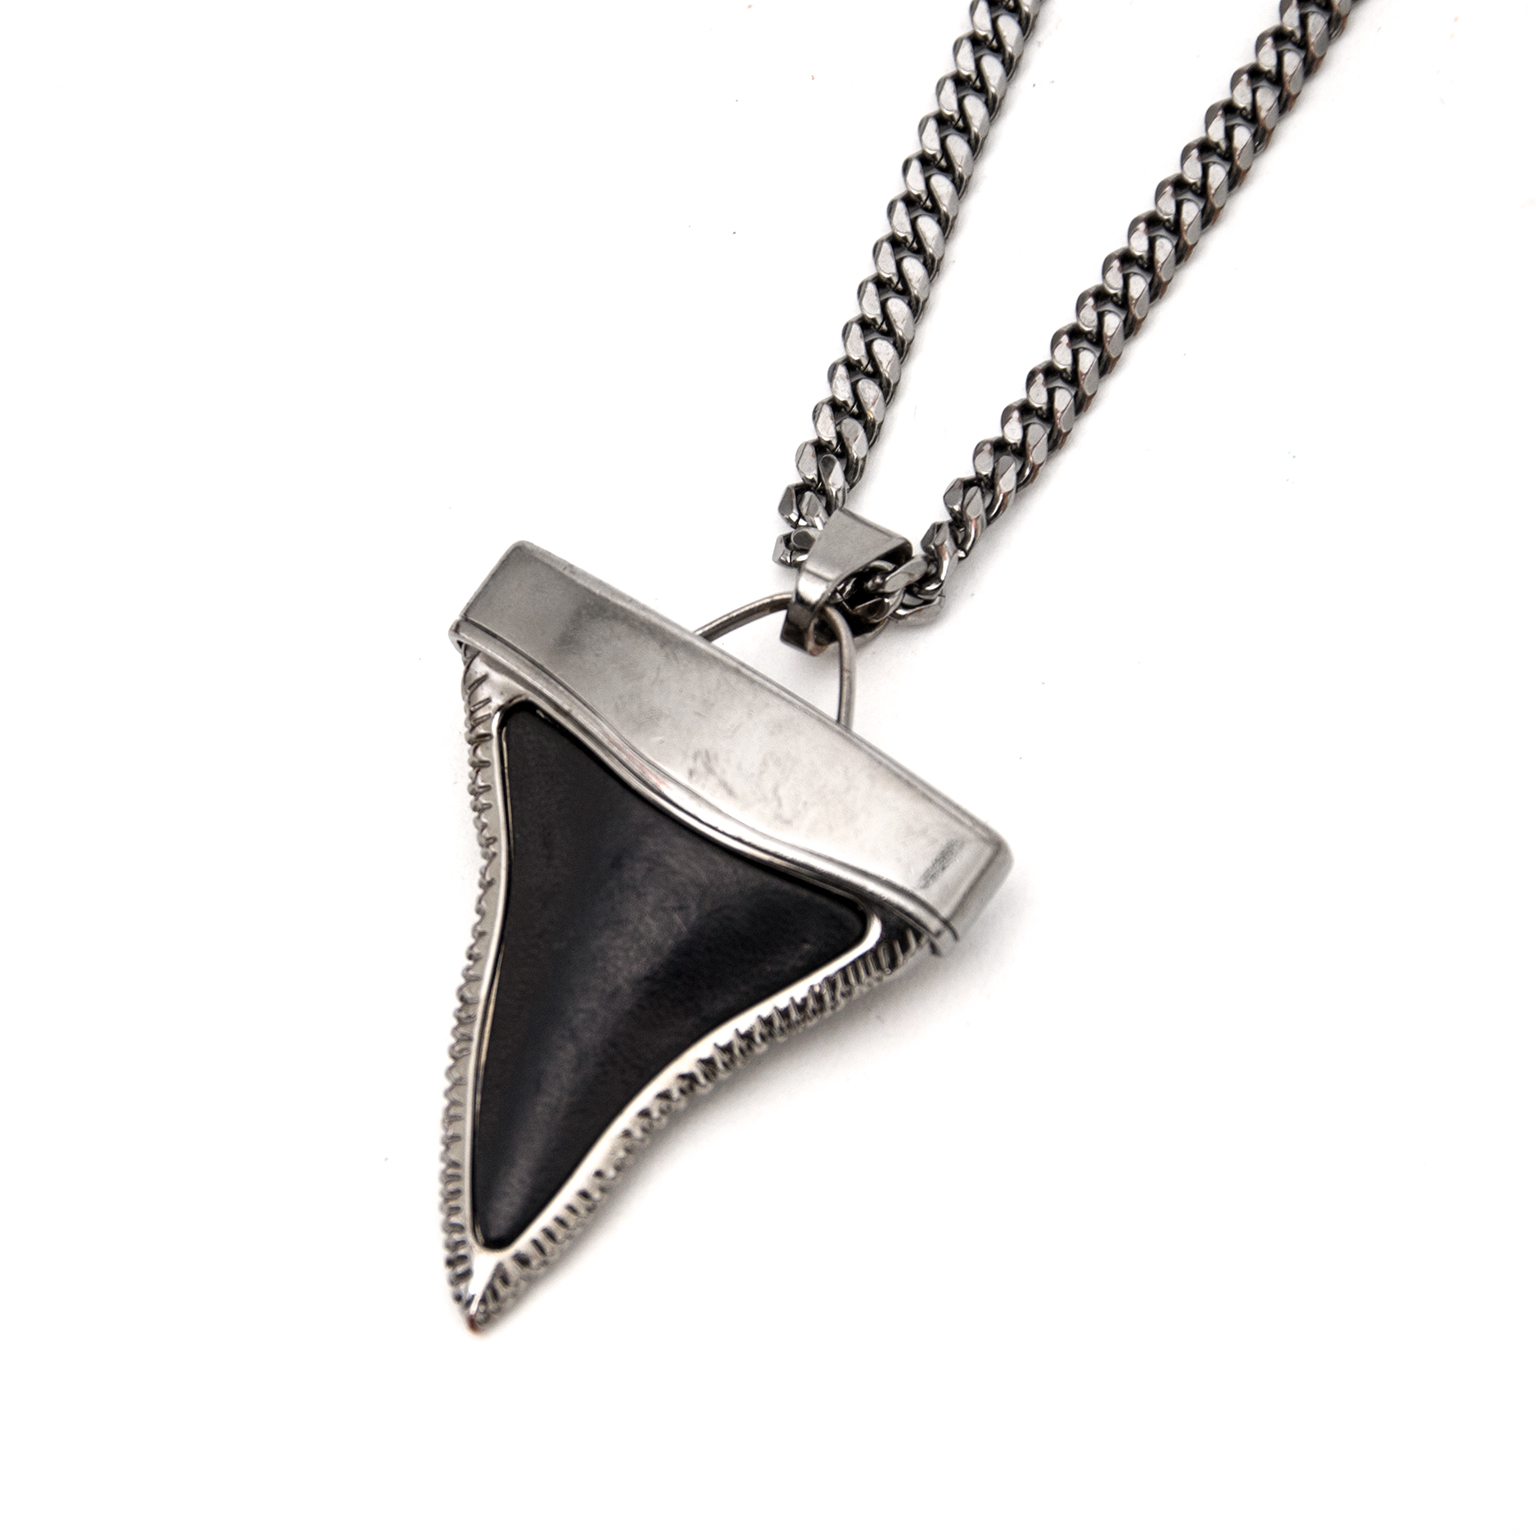 Buy now safe and secure an Authentic Givenchy Shagreen Shark's Tooth Necklace now on www.labellov.com at the best price in 2017